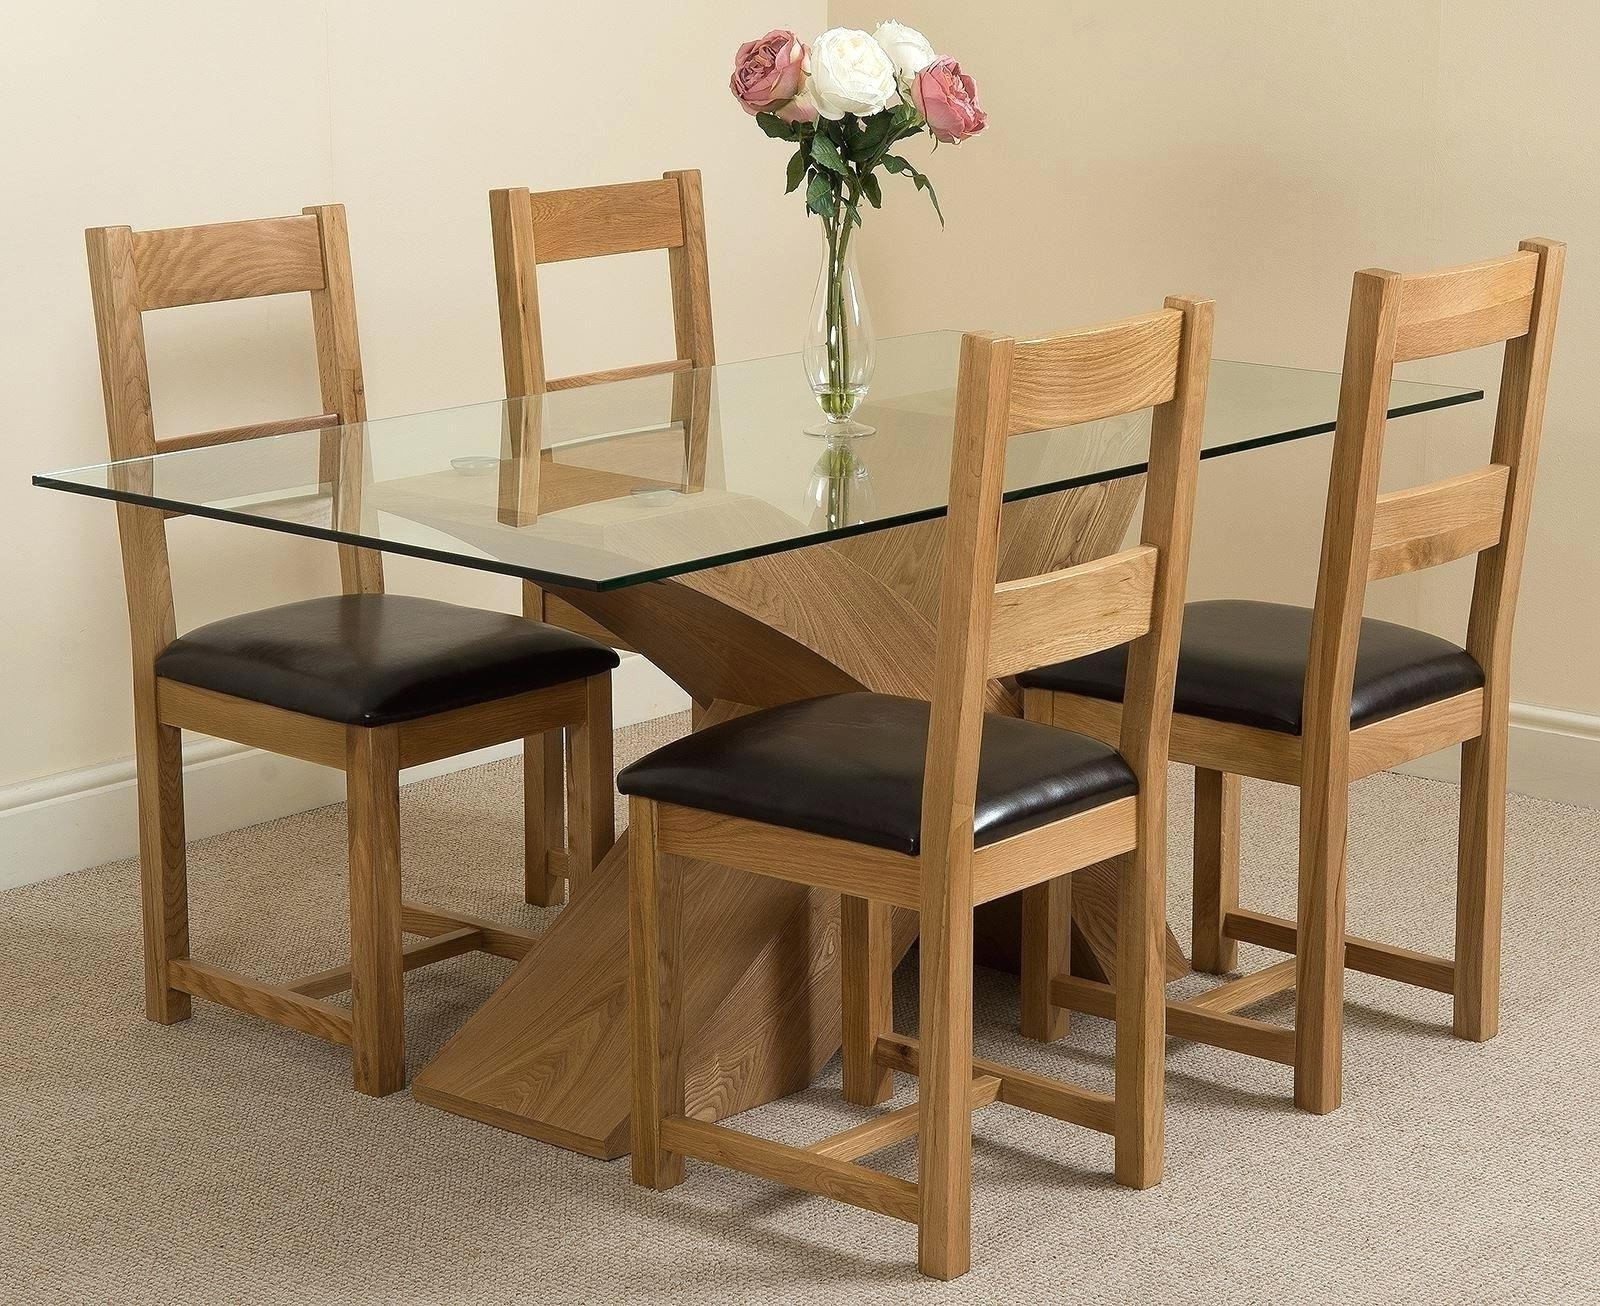 Second Hand Oak Dining Chairs Throughout Current Chair : Light Oak Dining Table And Chairs Second Hand Furniture Uk (View 7 of 25)